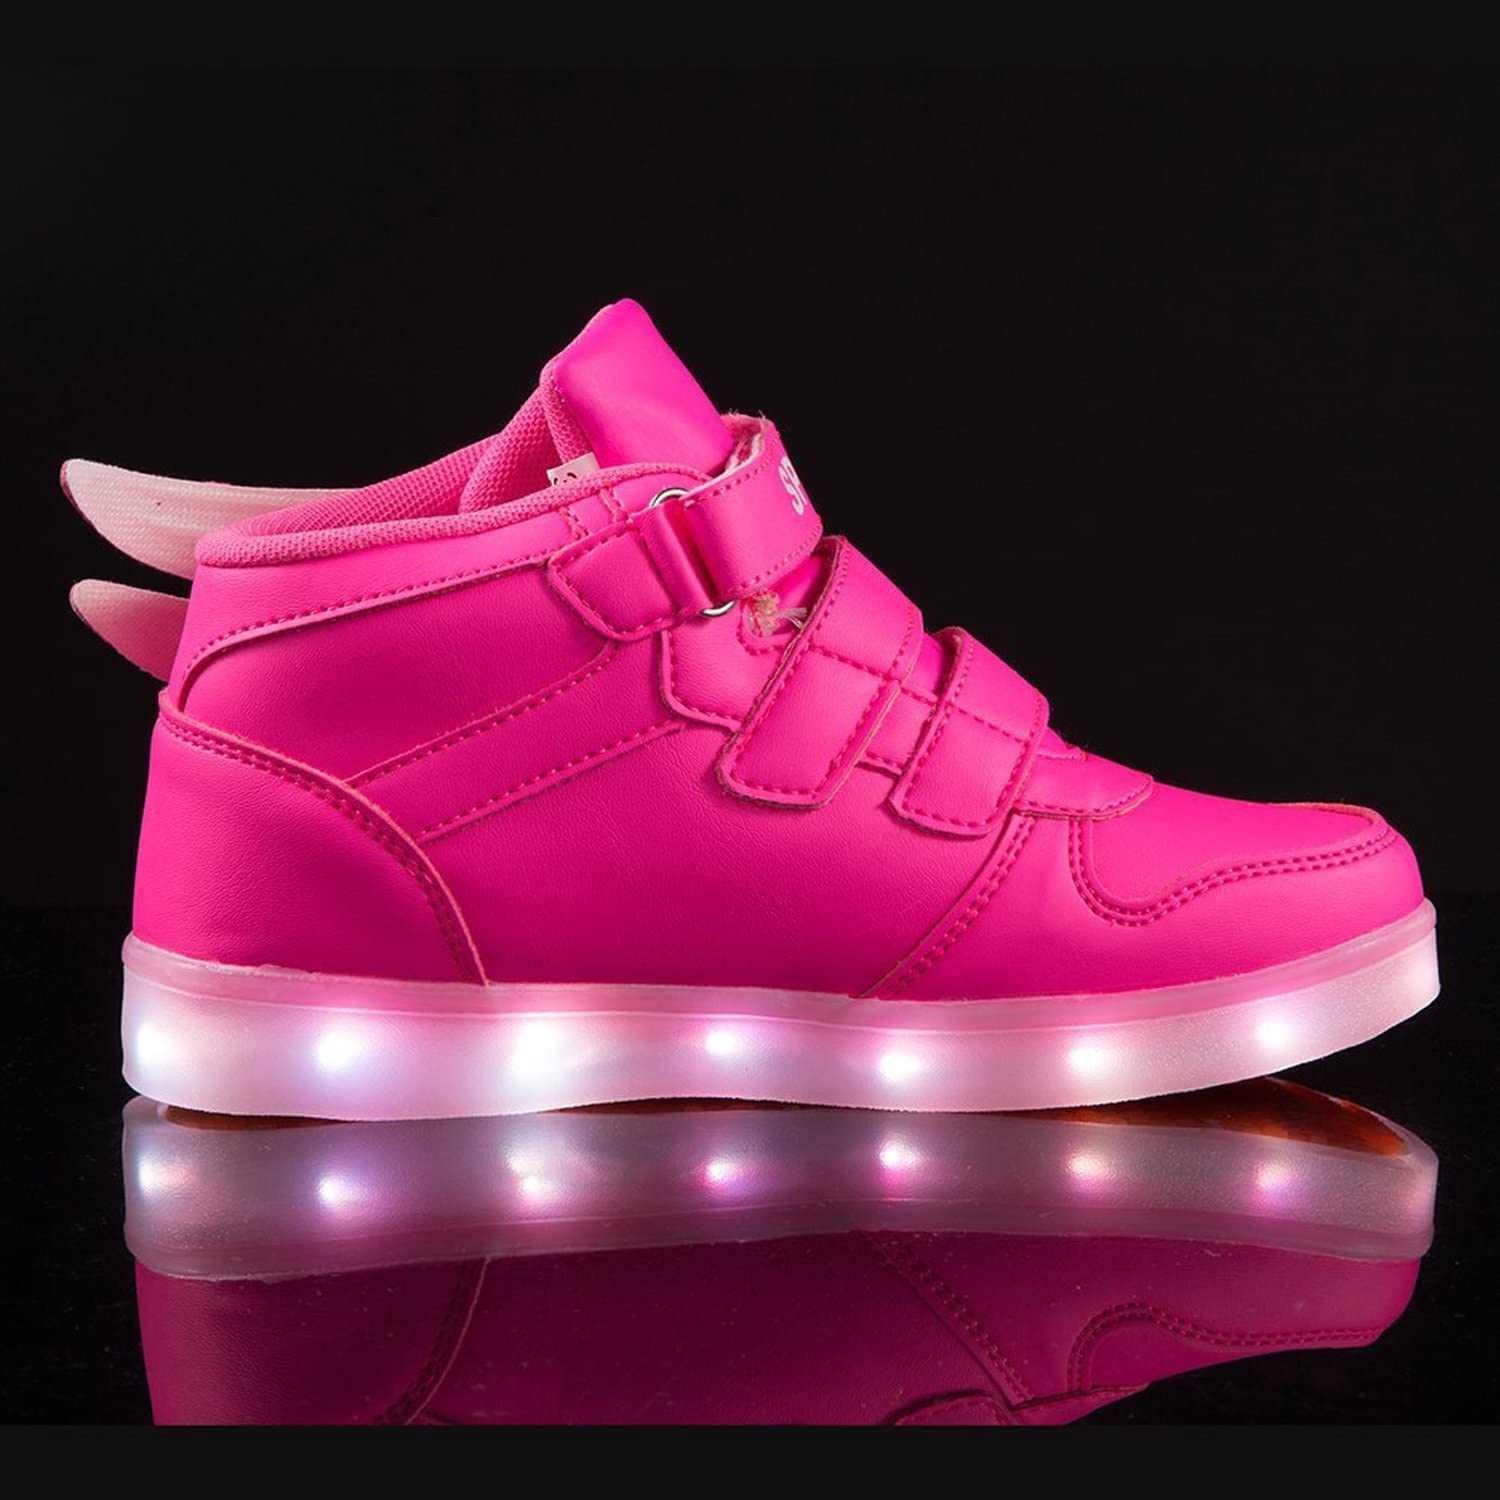 OUYAJI 11 Colors LED Light Up Wing Shoes High Top Flashing Sneakers for Kid/&Adult